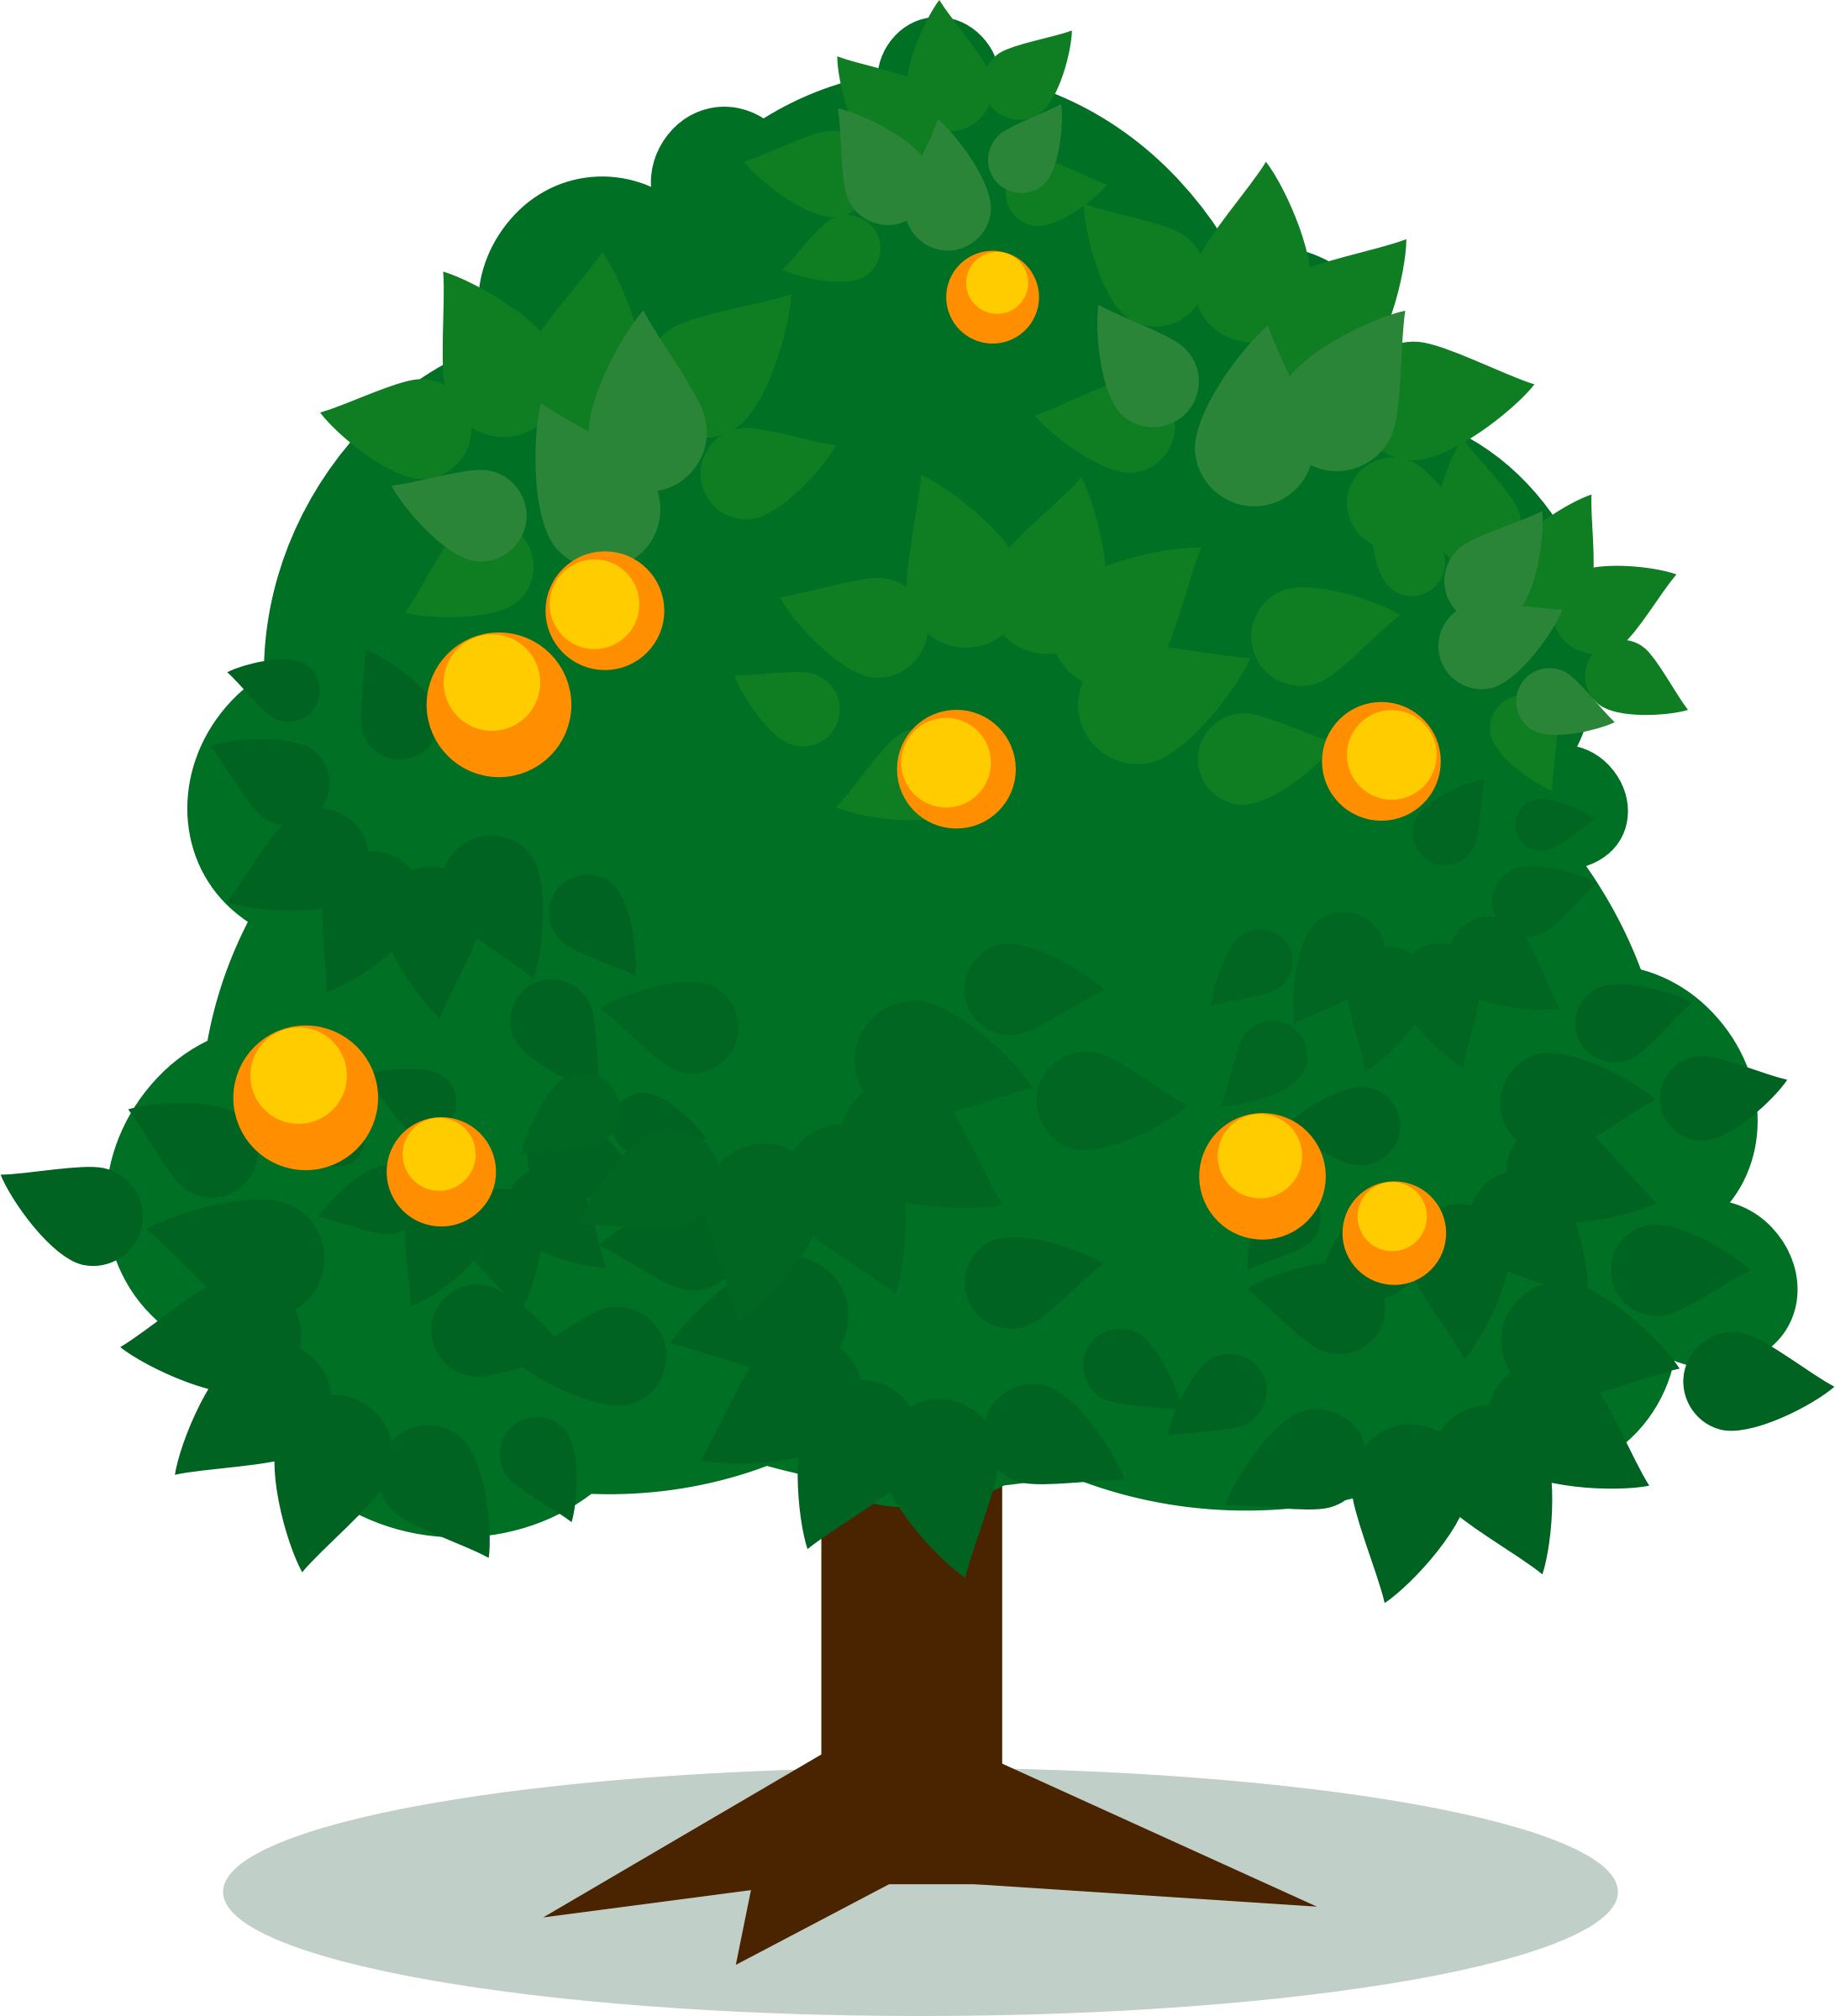 Tree Cartoon Png | Free download best Tree Cartoon Png on ClipArtMag.com vector